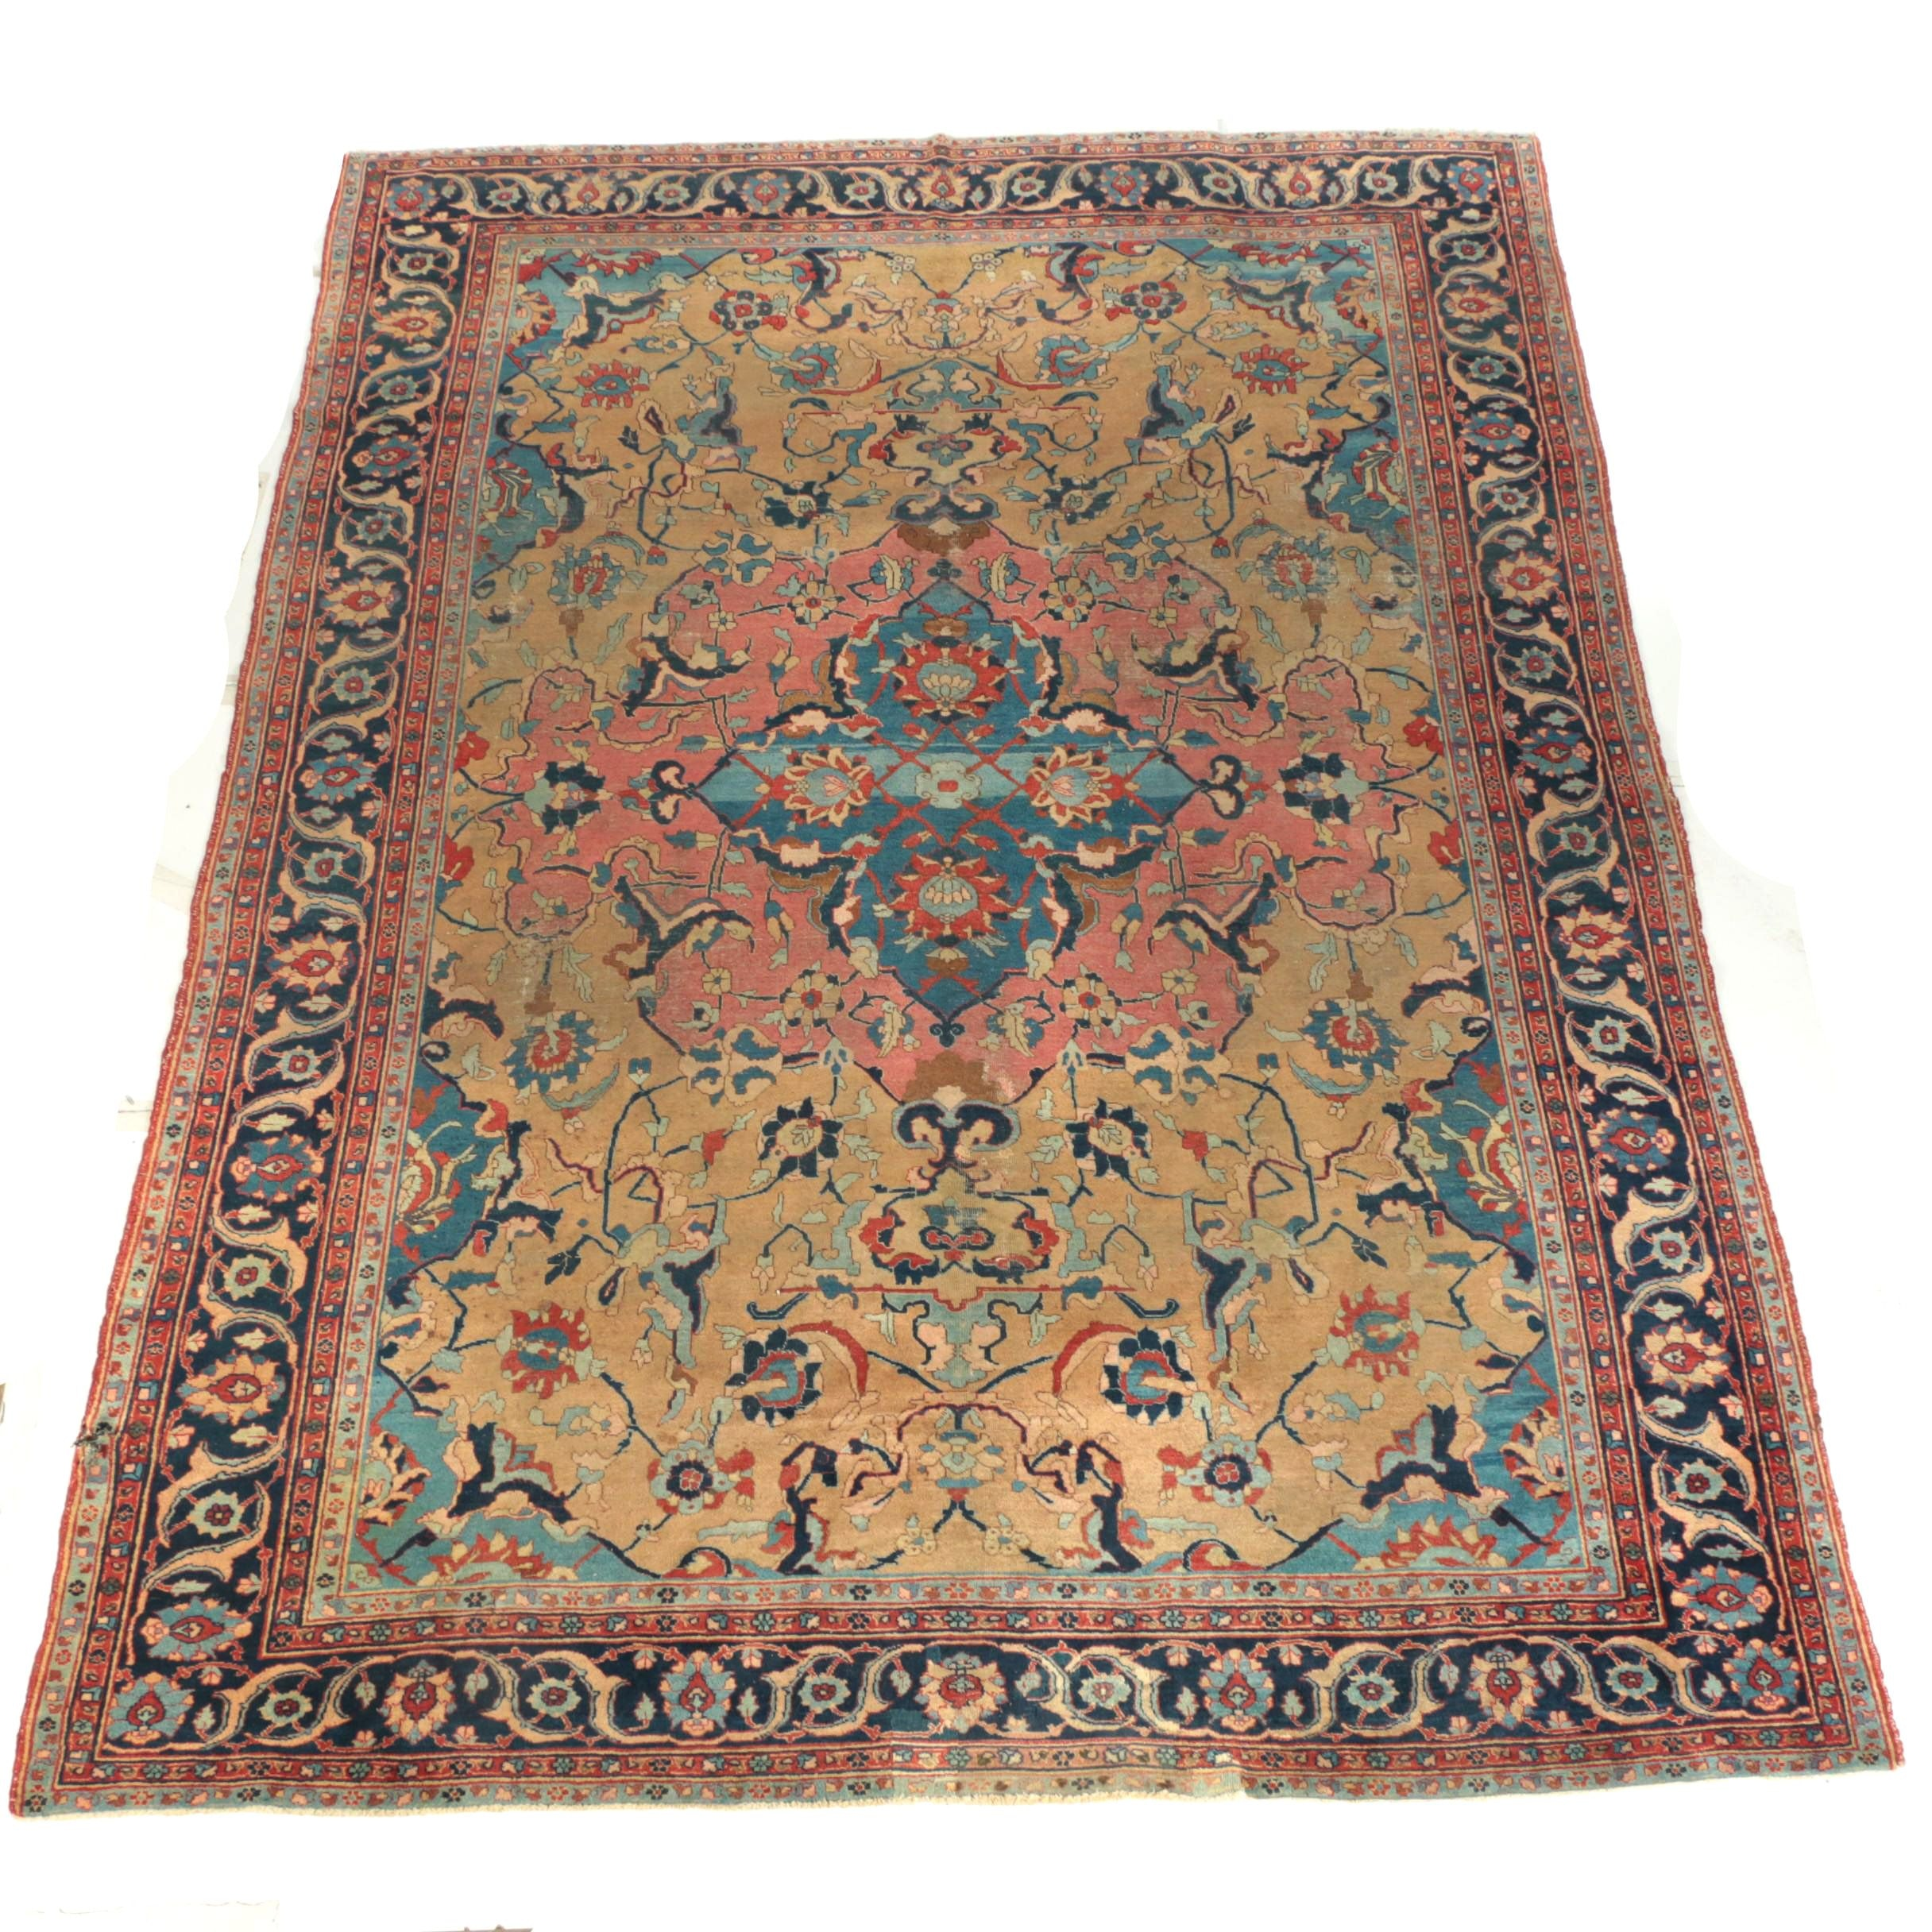 Semi-Antique Hand-Knotted Persian Wool Room Sized Rug